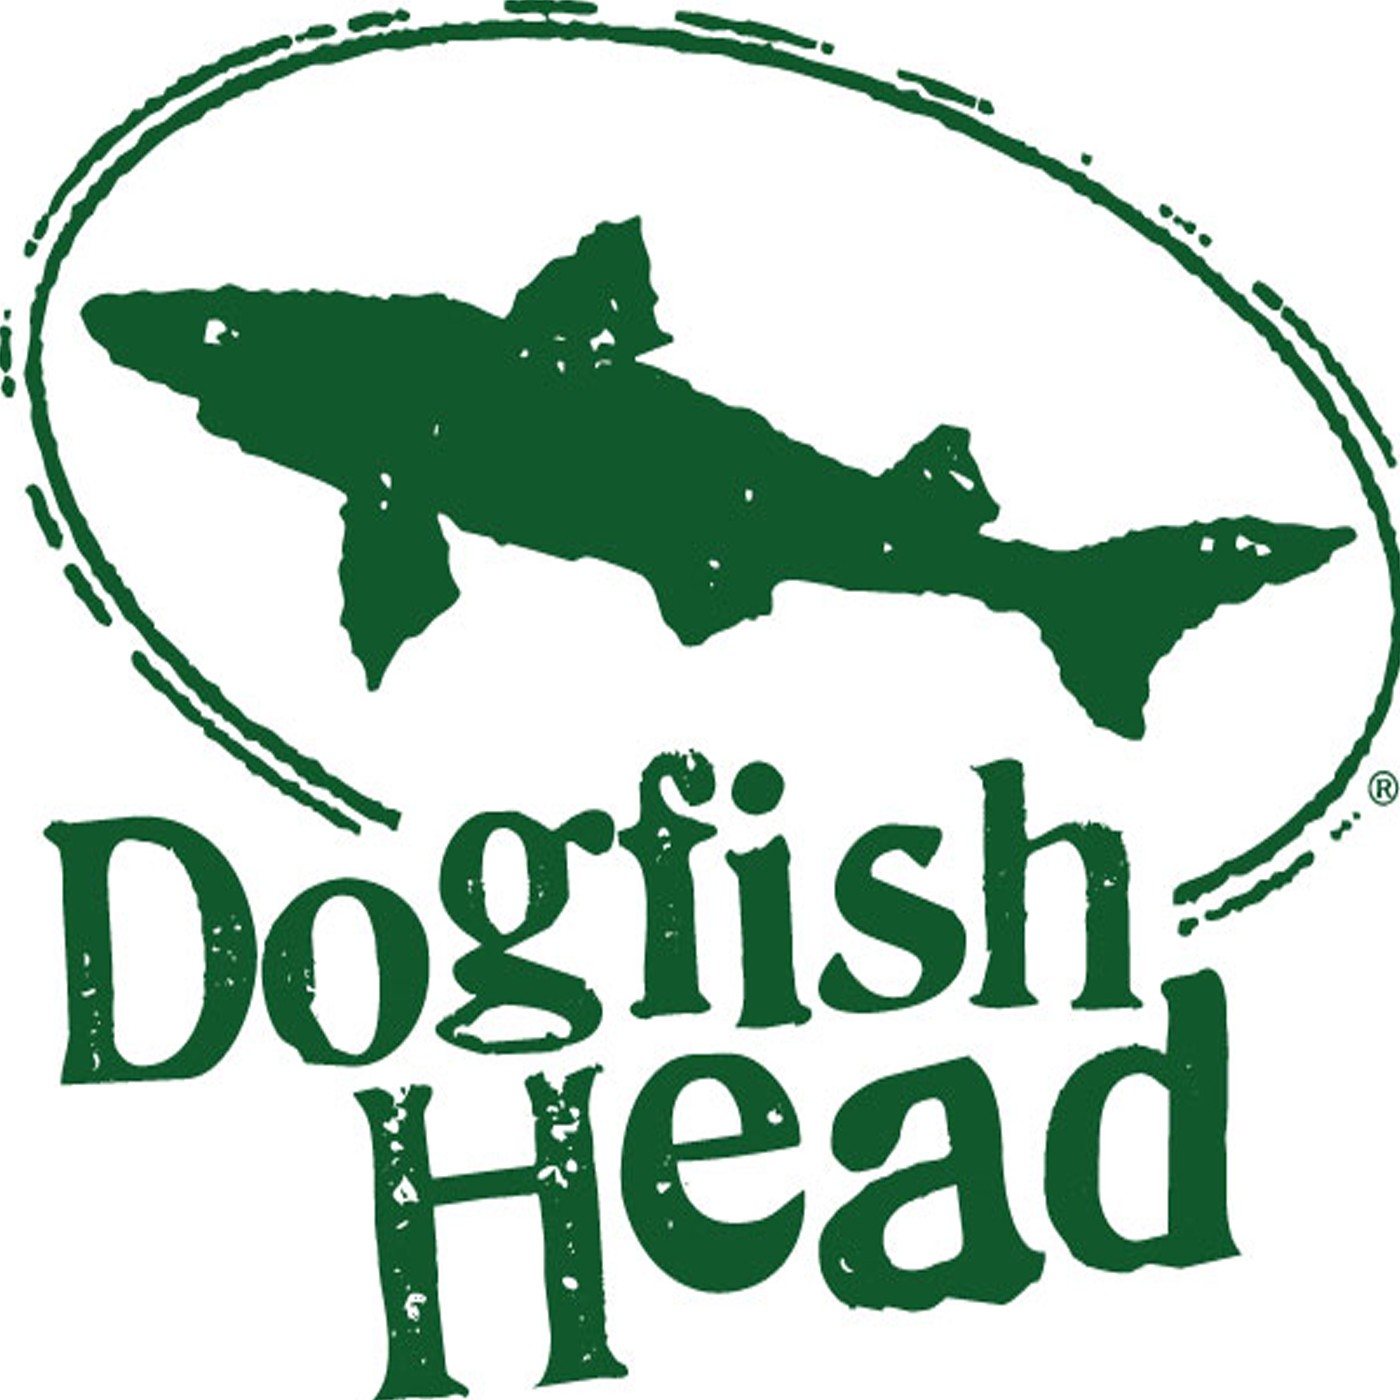 A Beer-Centric Dinner with Dogfish Head